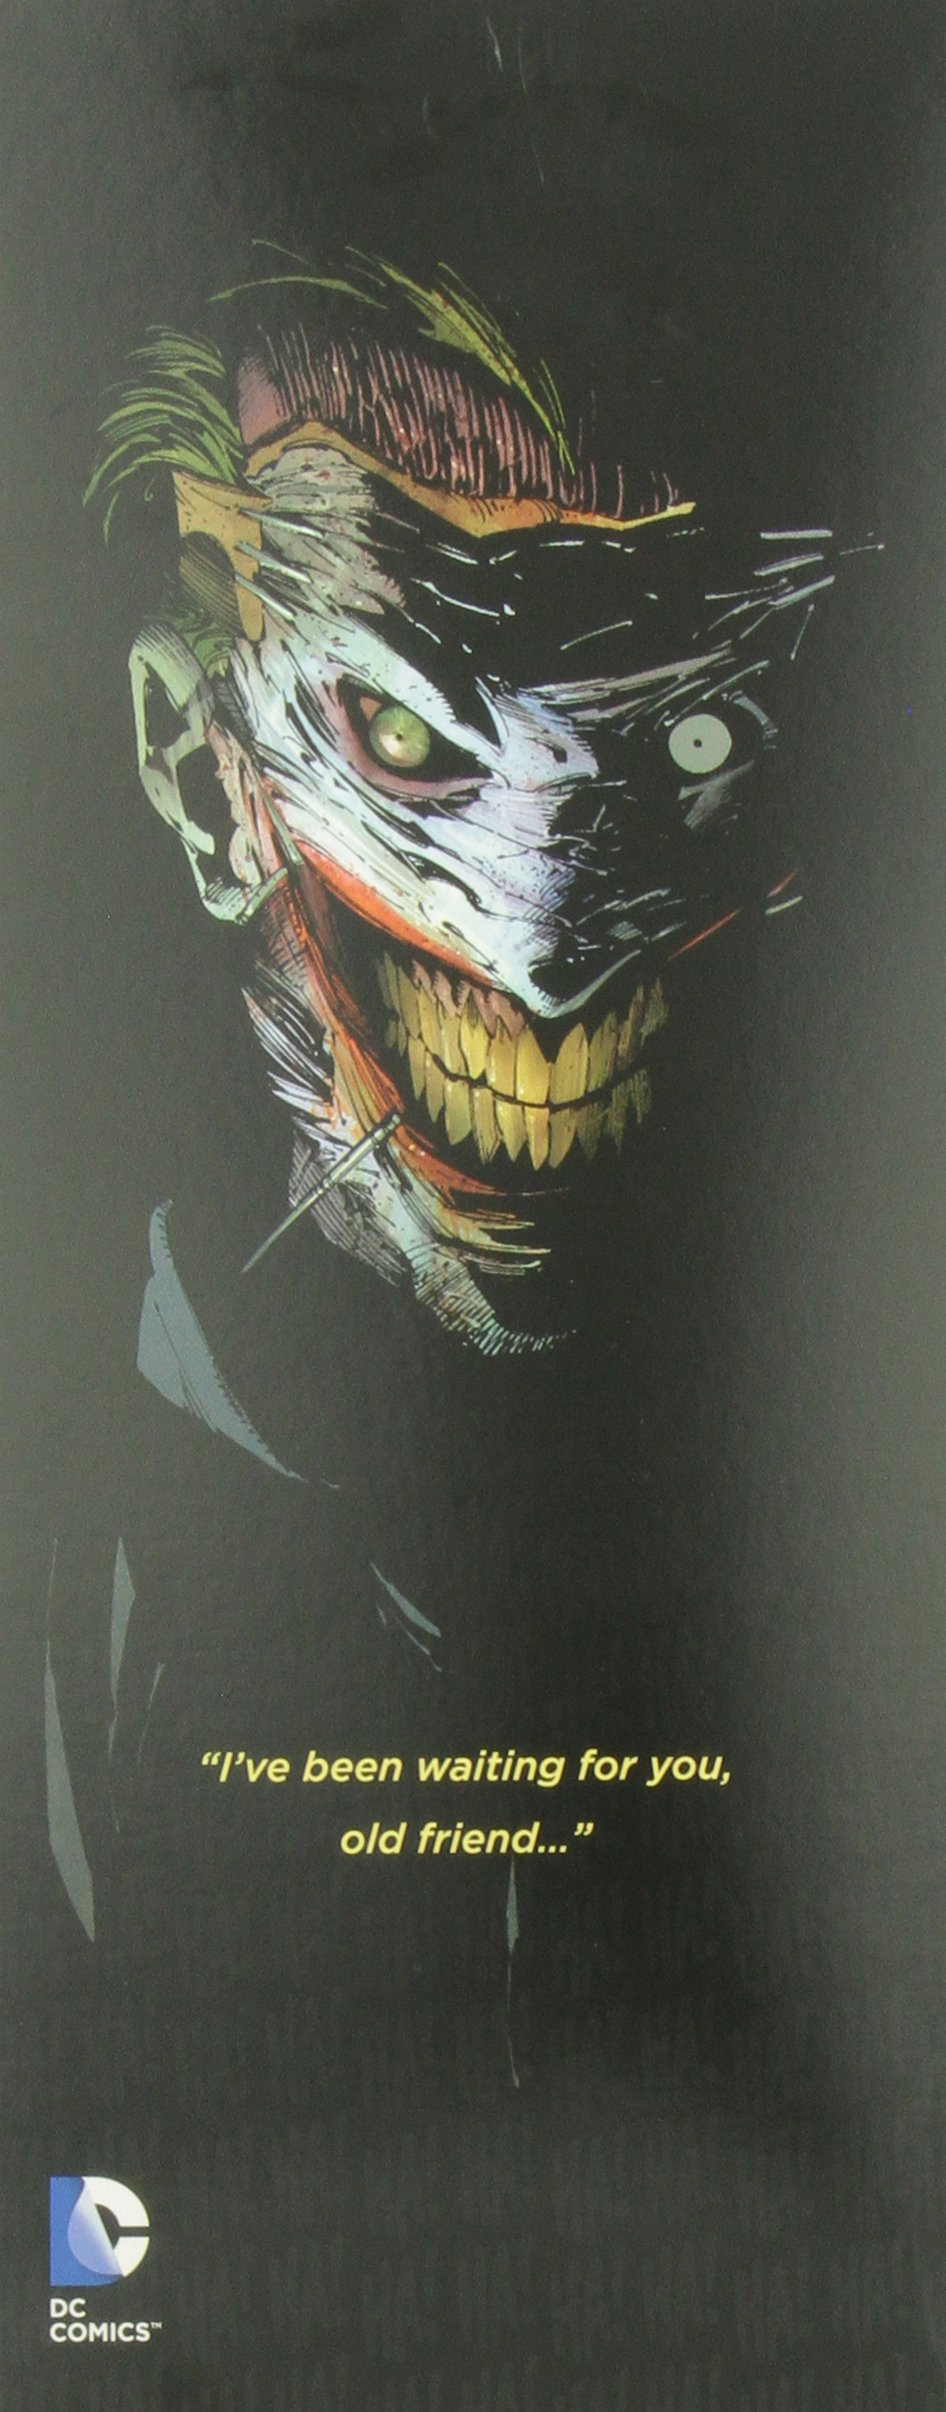 Amazon batman death of the family book and joker mask set amazon batman death of the family book and joker mask set 8601422052053 scott snyder greg capullo books fandeluxe Images